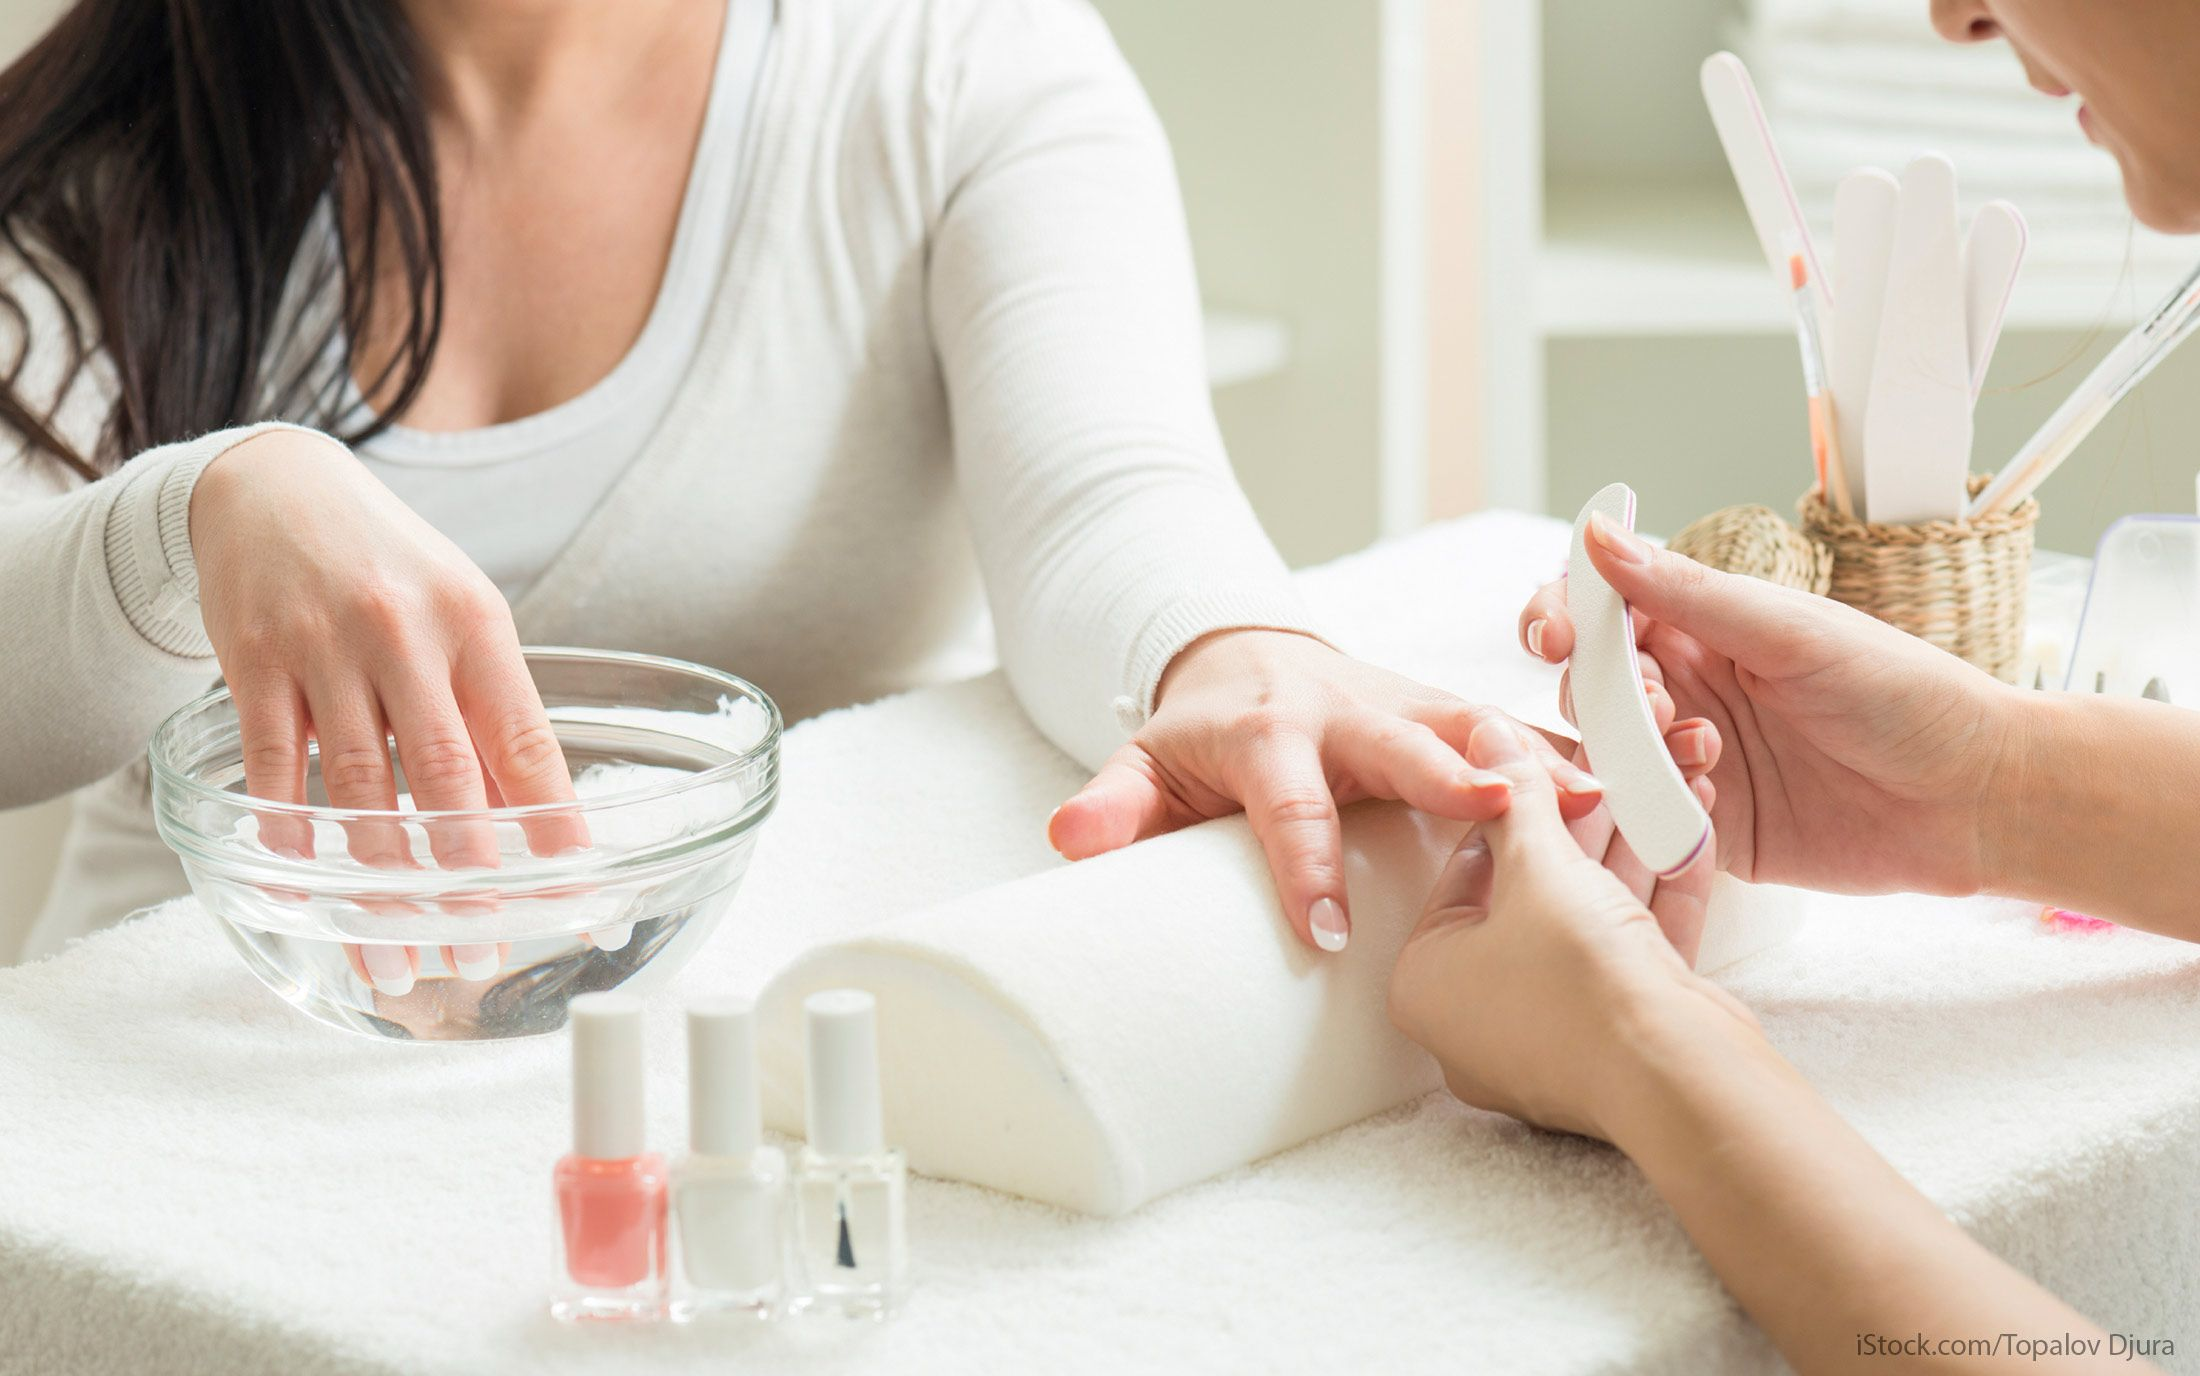 cash-only nail salons